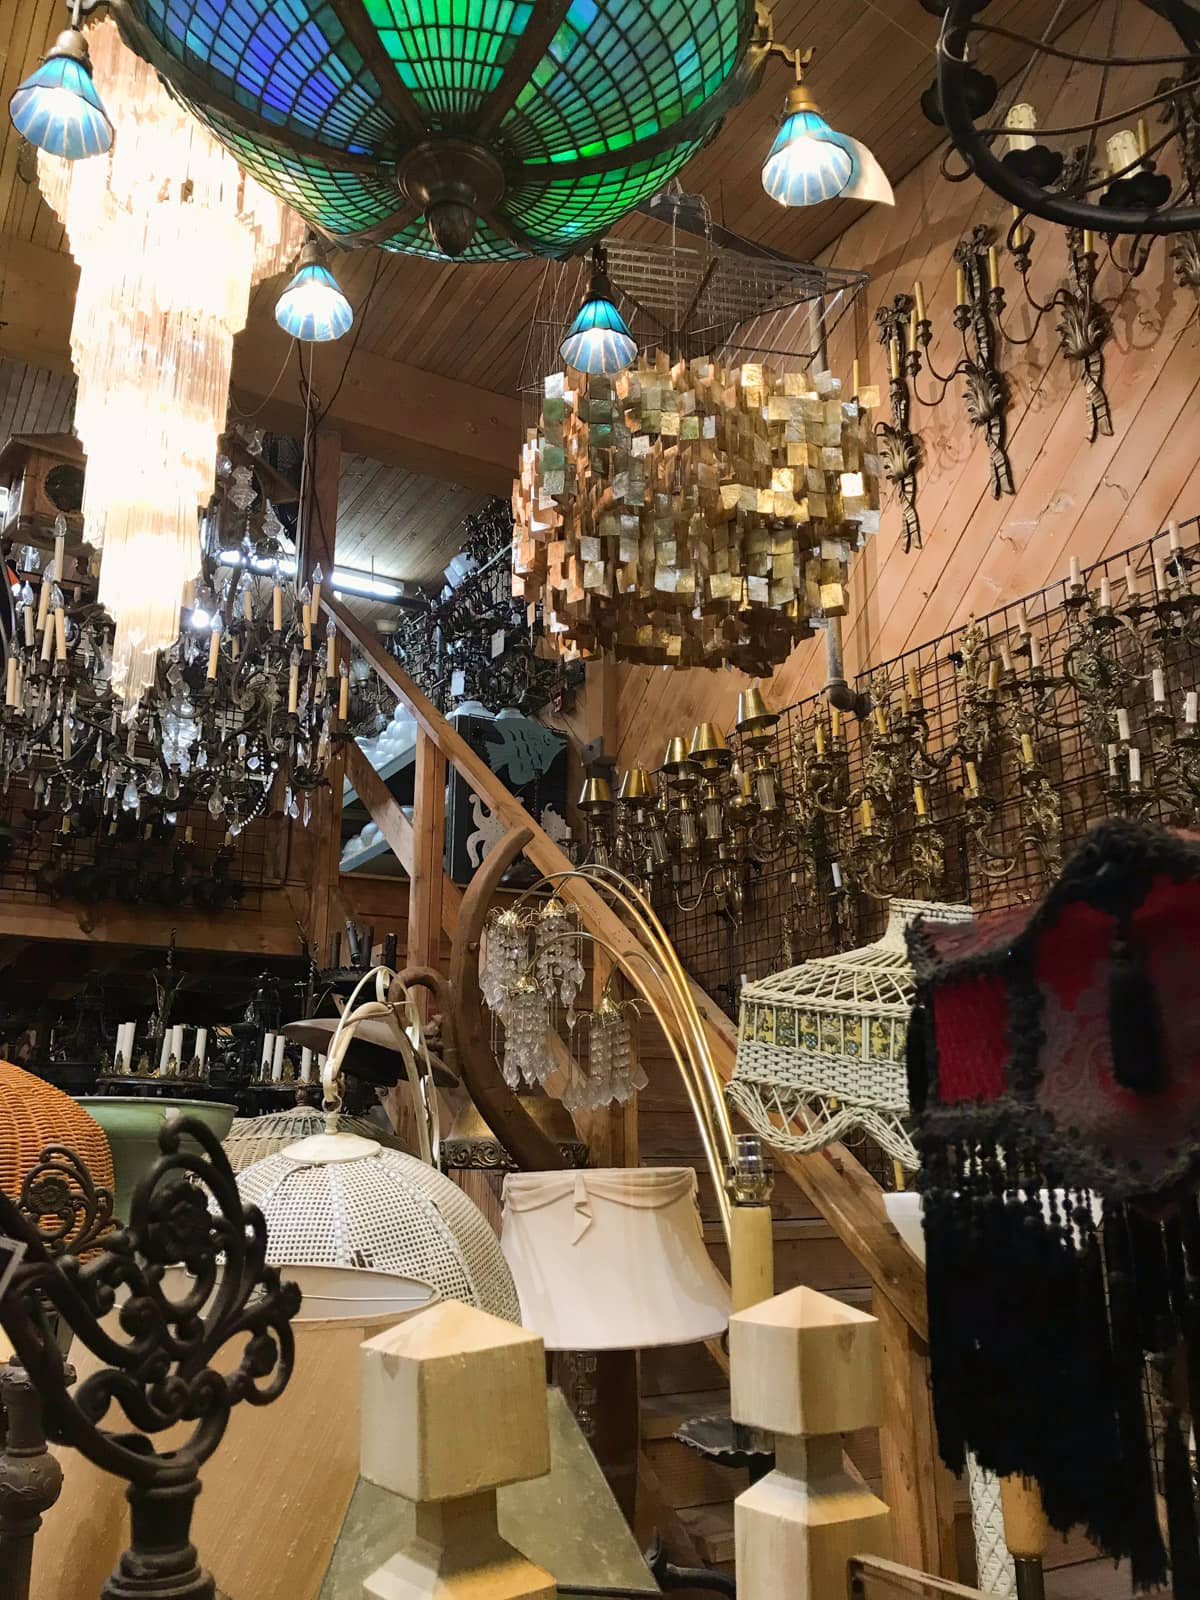 The inside of a props warehouse with many lanterns, chandeliers and other lighting.